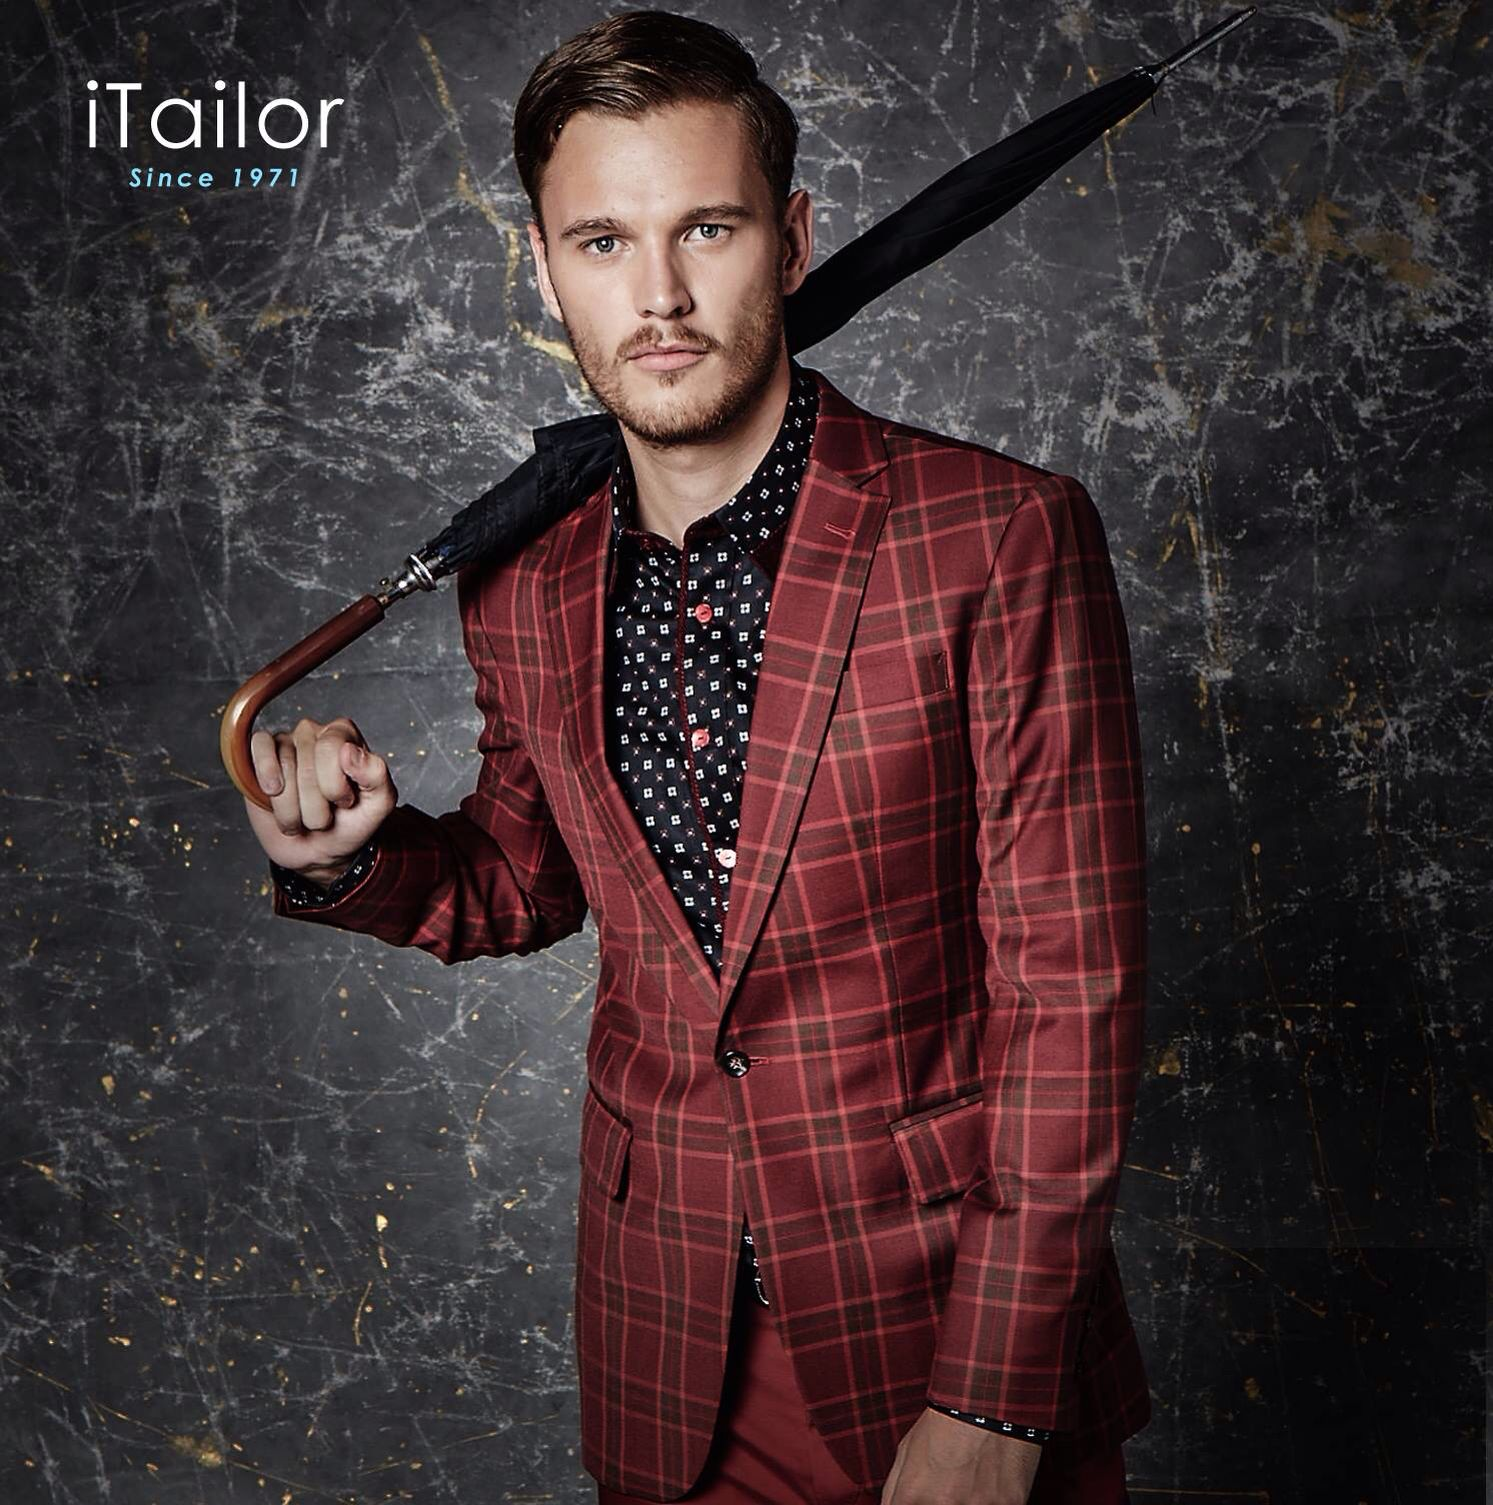 ITailor Red Check Suit | Men's tuxedo styles, Fashion